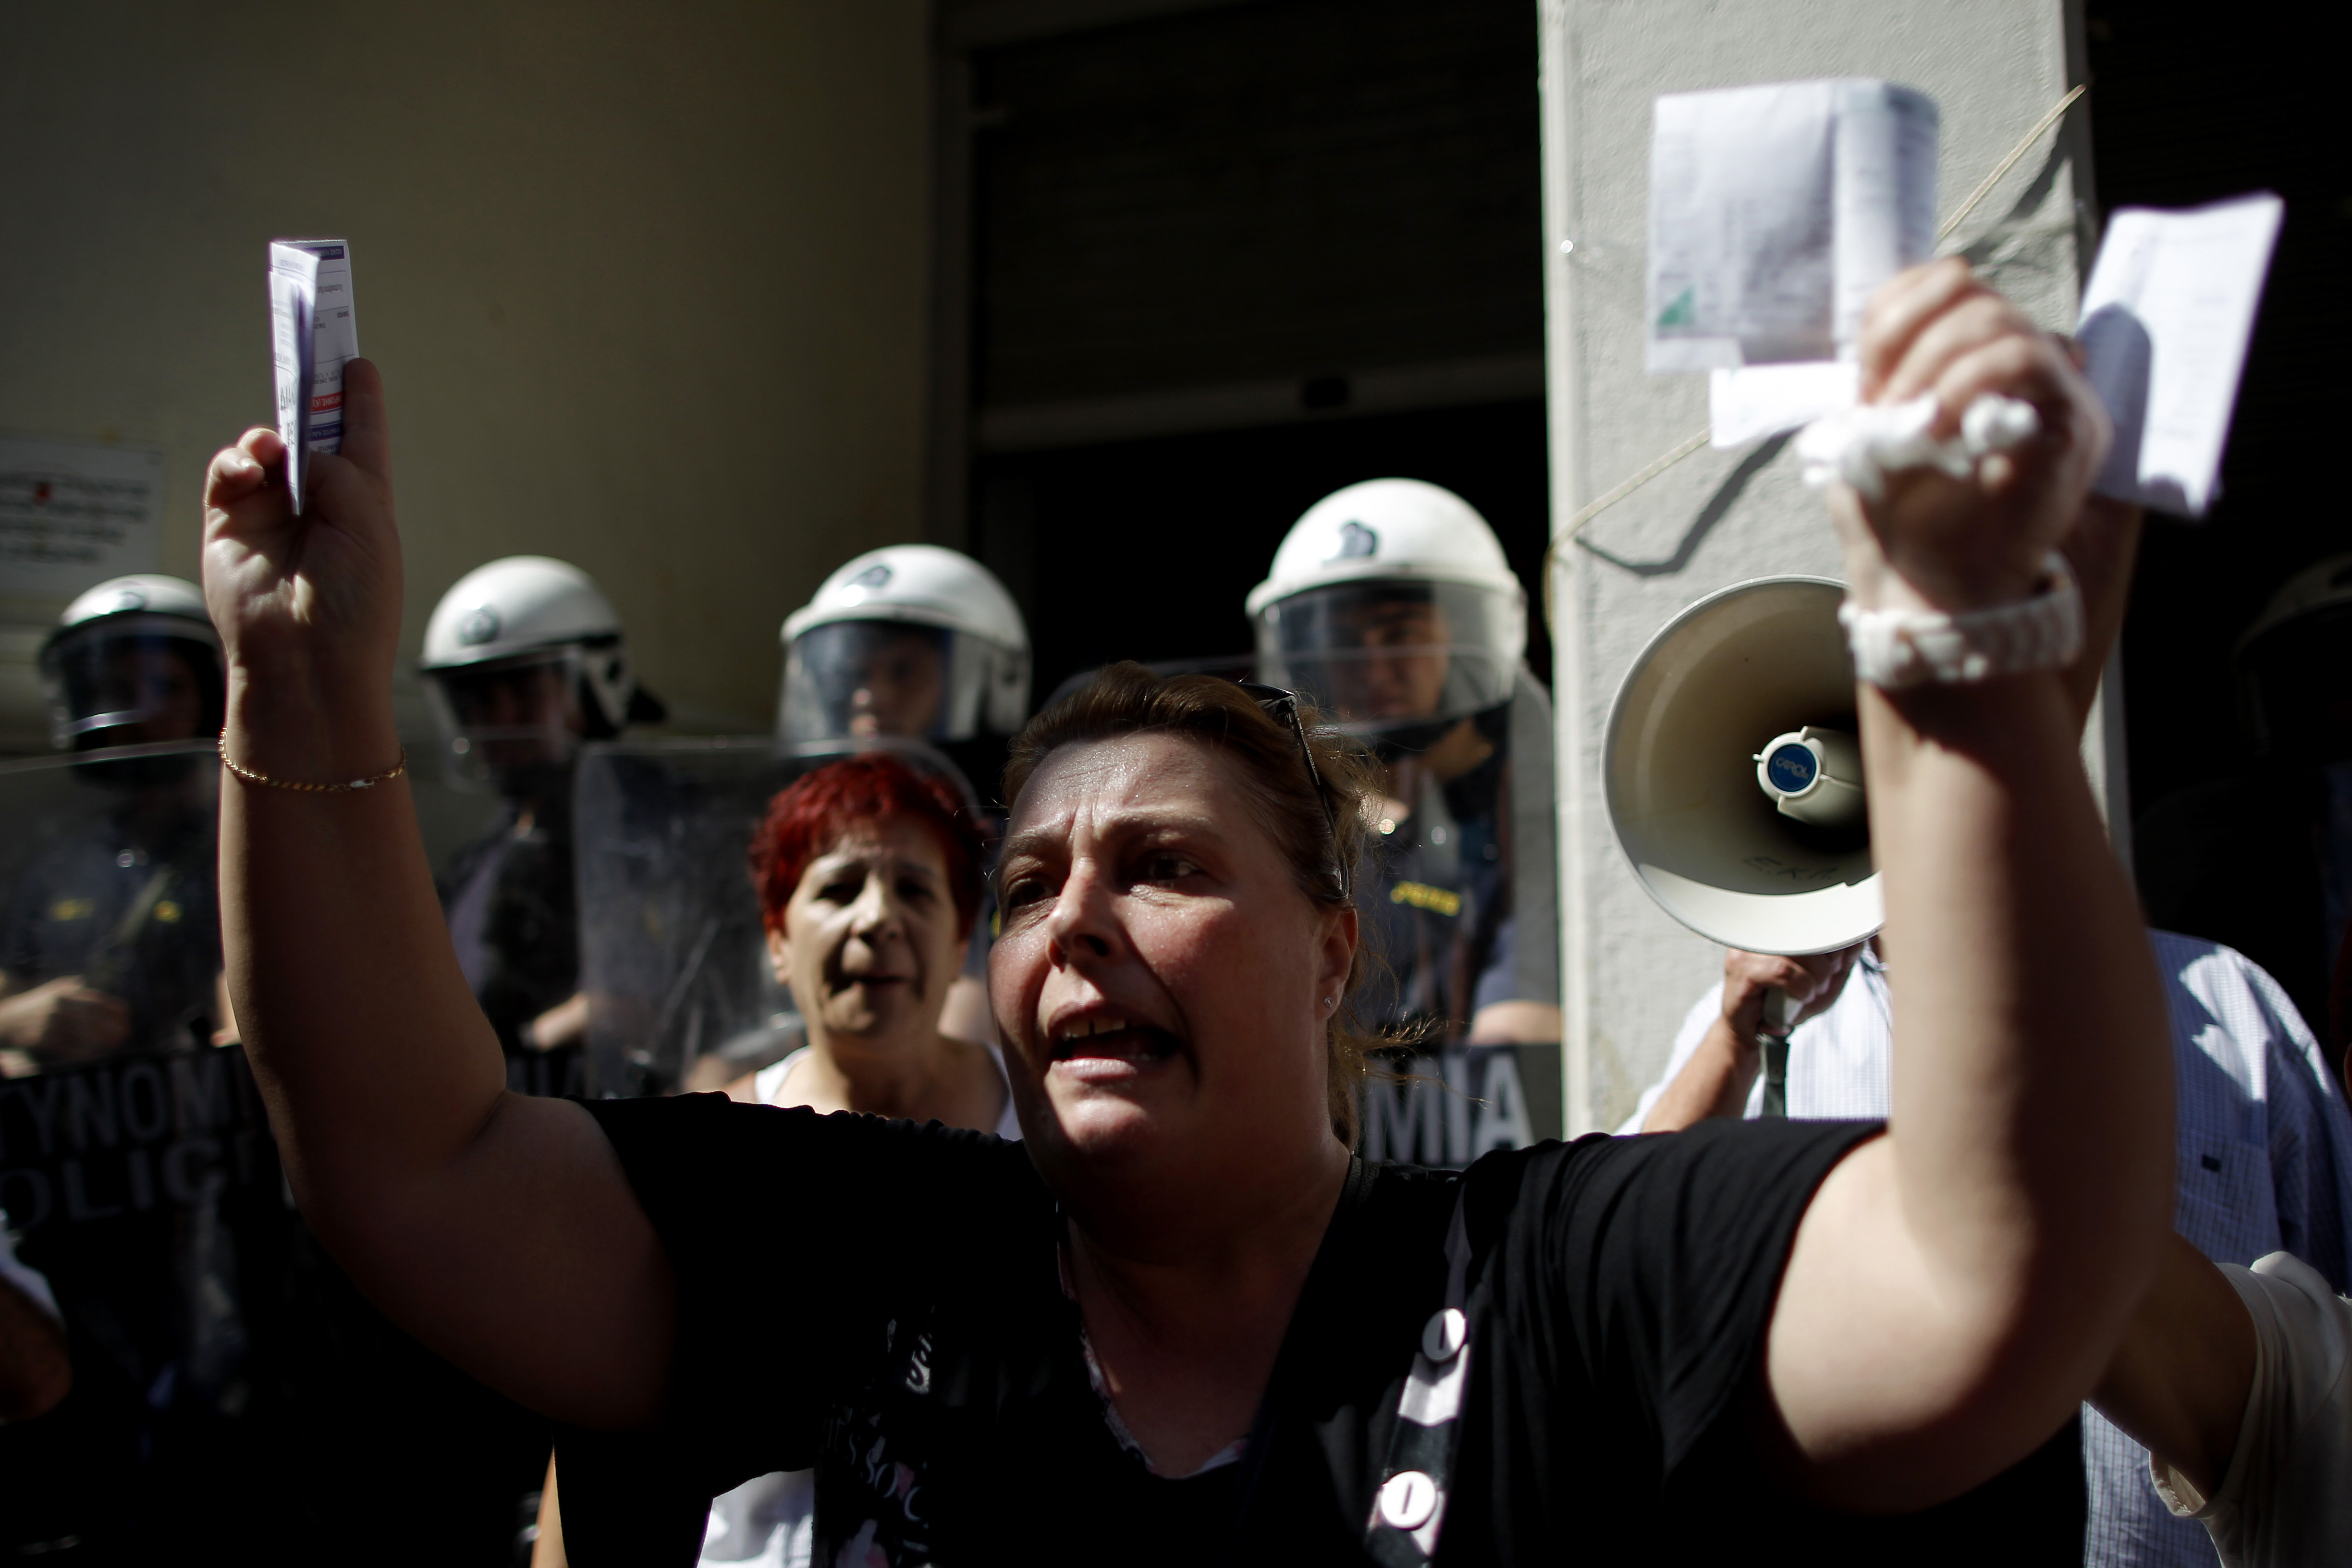 hit by crisis, greek society in free-fall